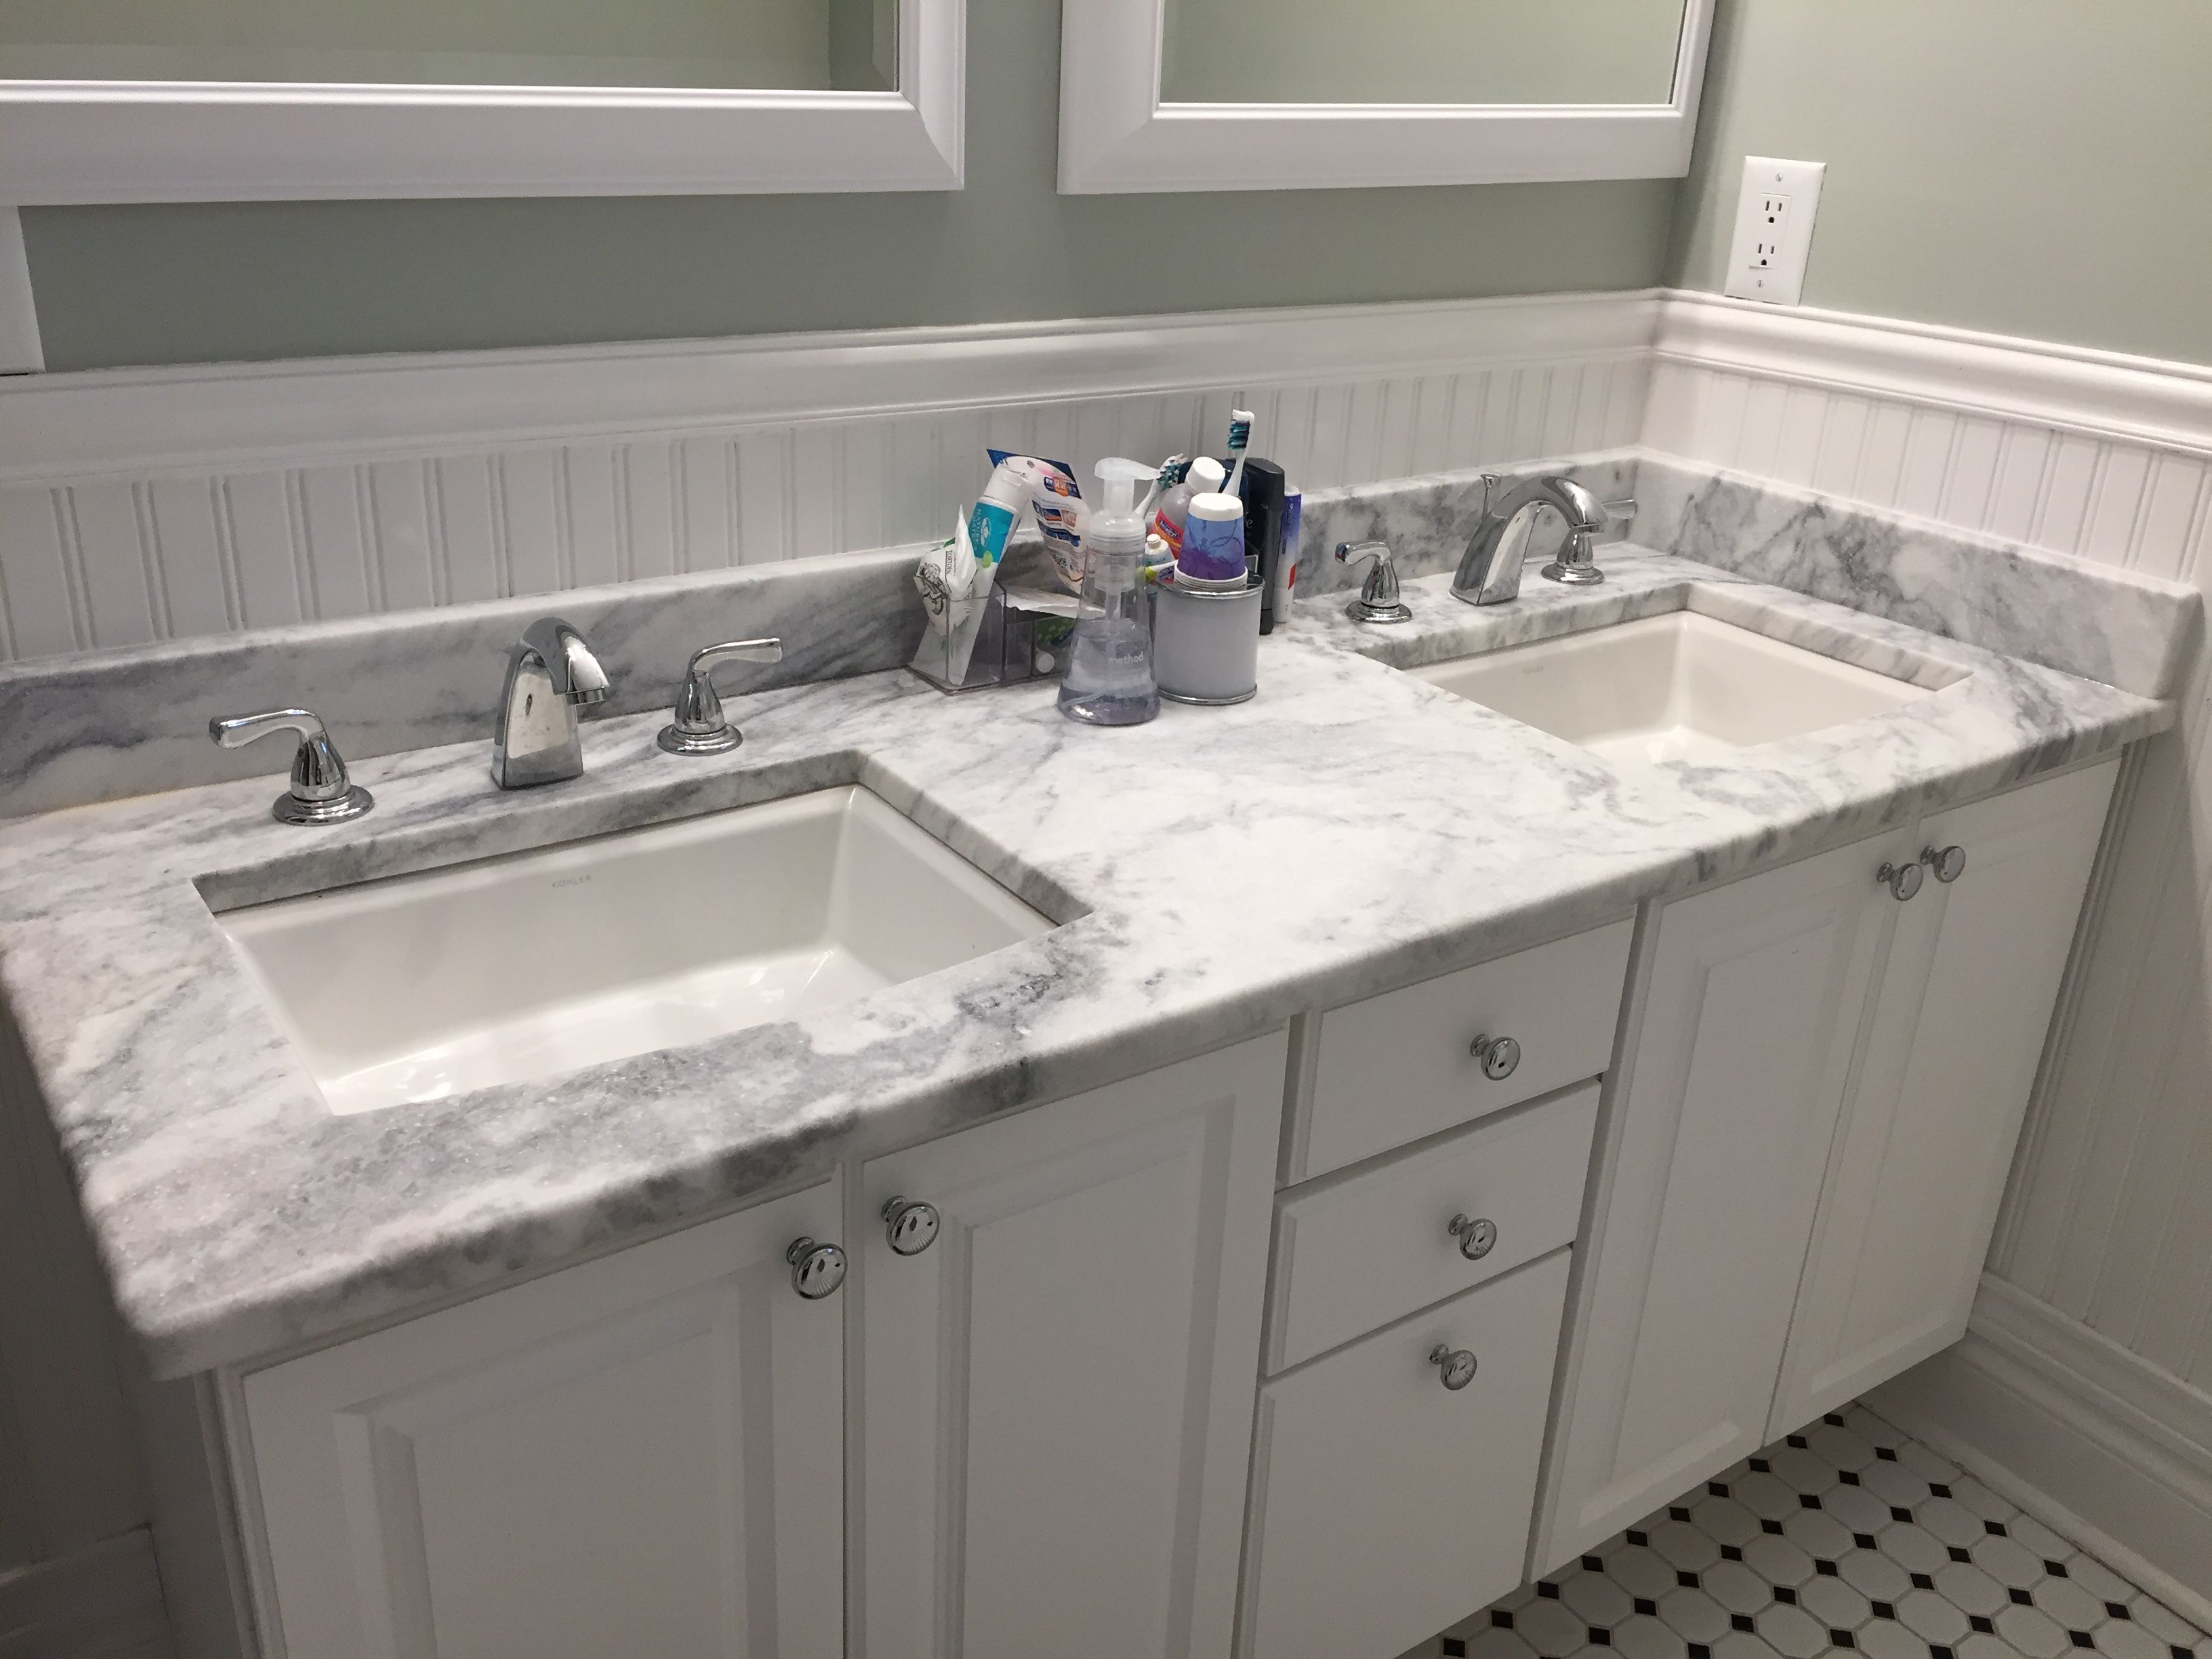 Mont Blanc Honed quartzite vanity countertop in a